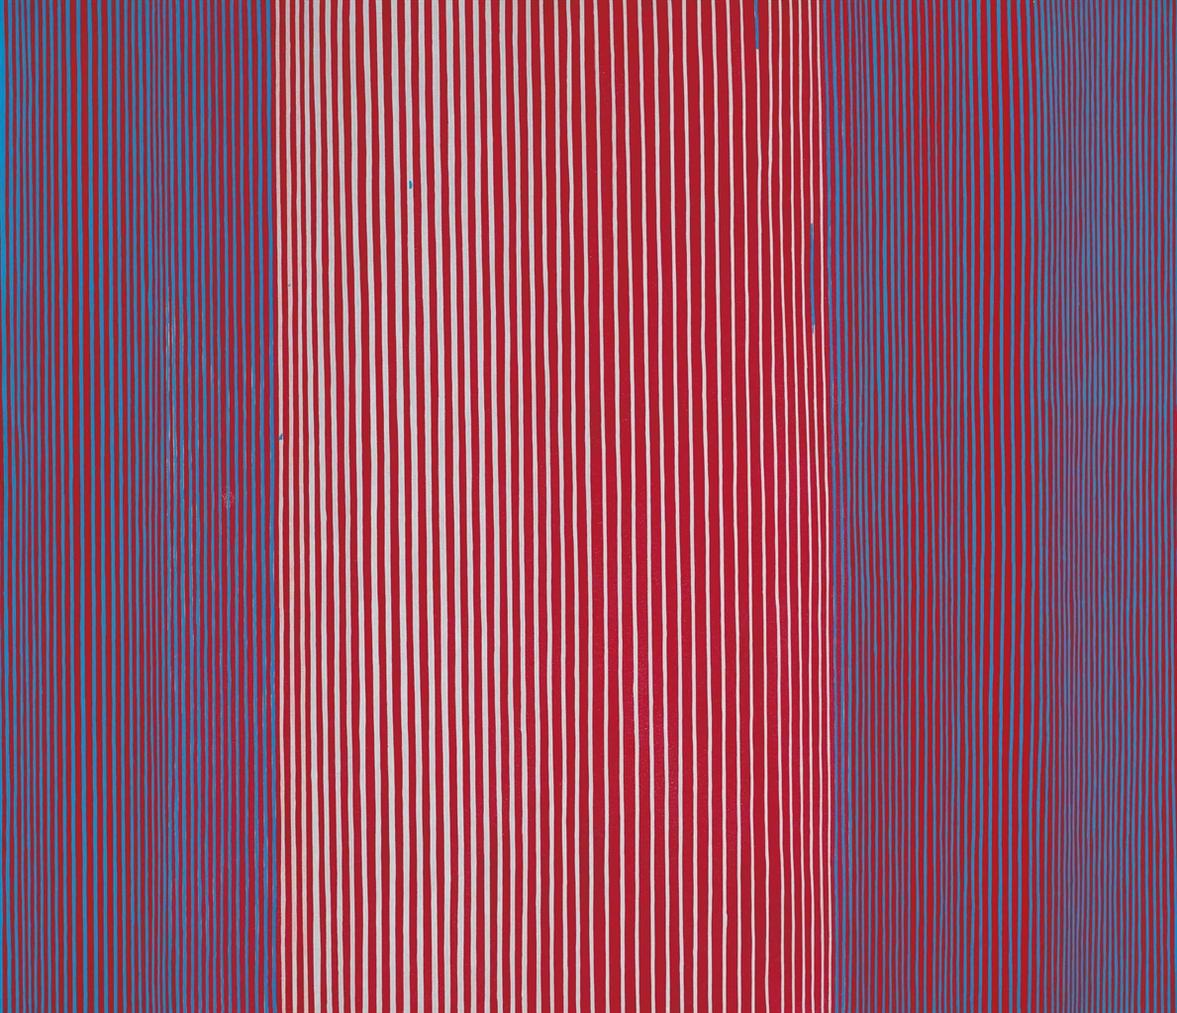 Julian Stanczak-Transcending Currents-1964